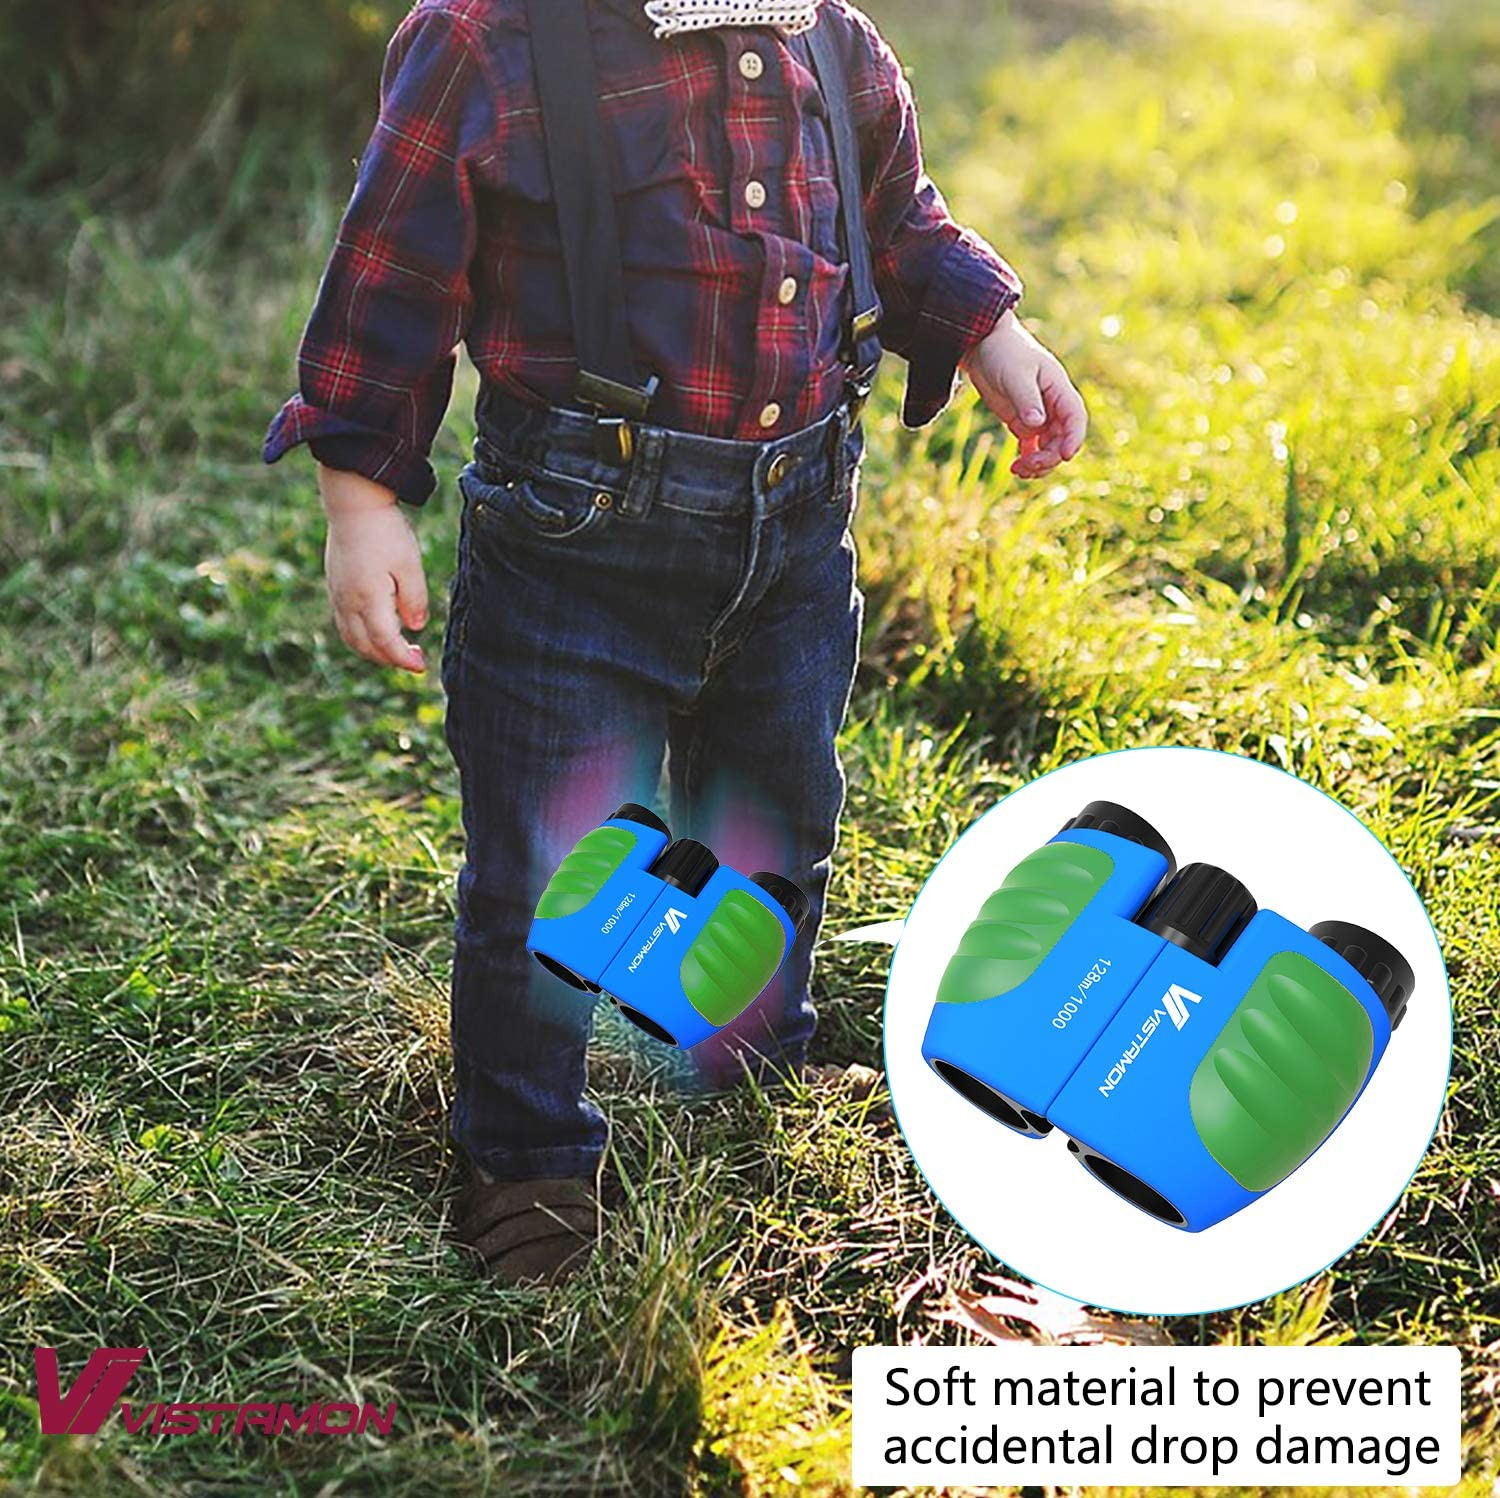 Compact Shock Proof Binoculars for Kids 8x21 with High-Resolution Real Optics Best Gift for Boys /& Girls Toys 3-12 Year Old